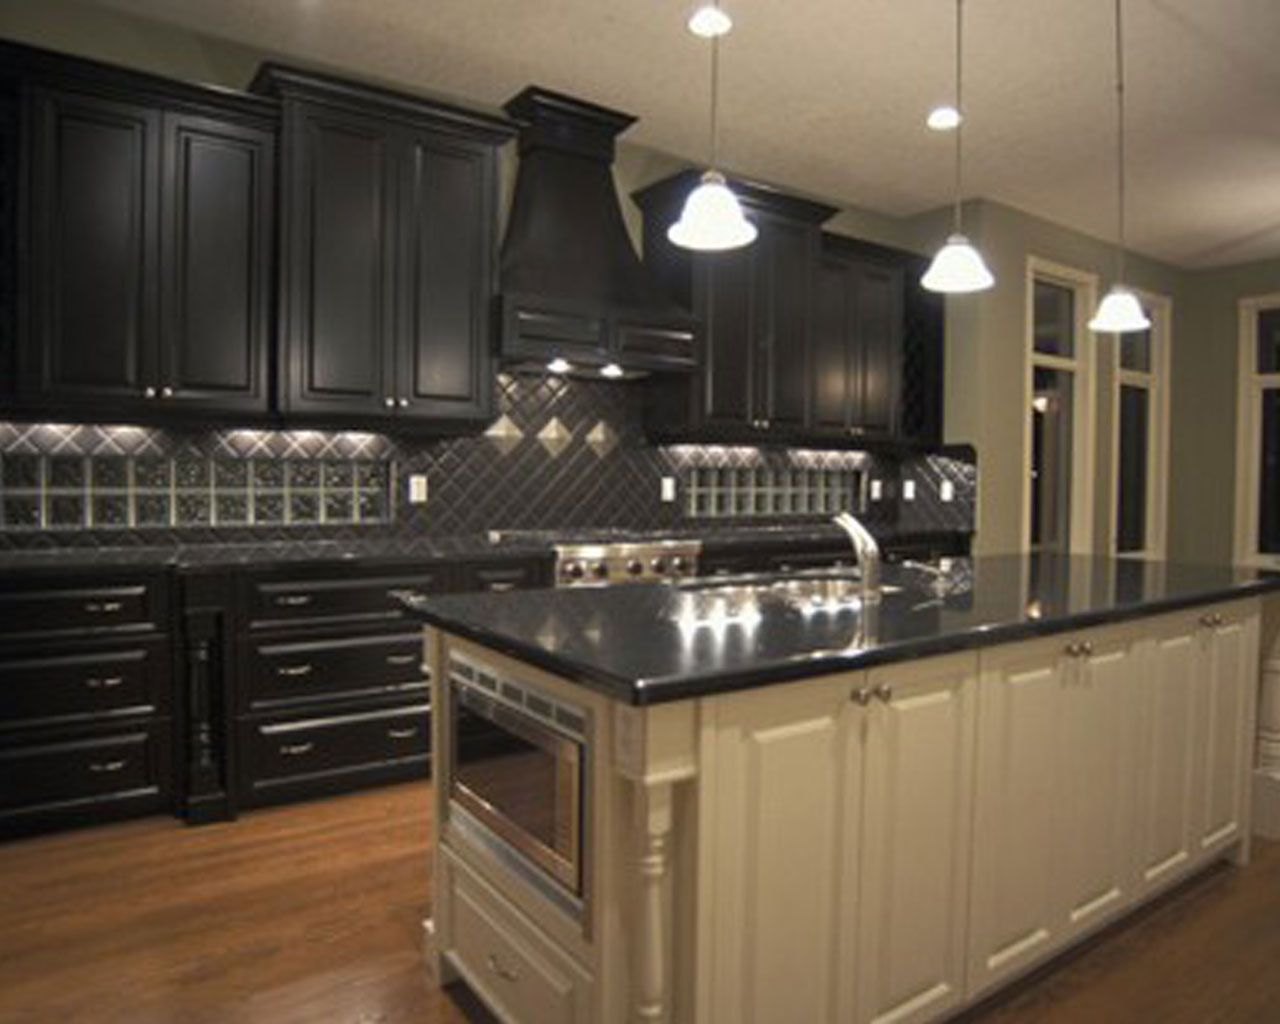 Finest design black kitchen cabinets wallpapers new for Darken kitchen cabinets